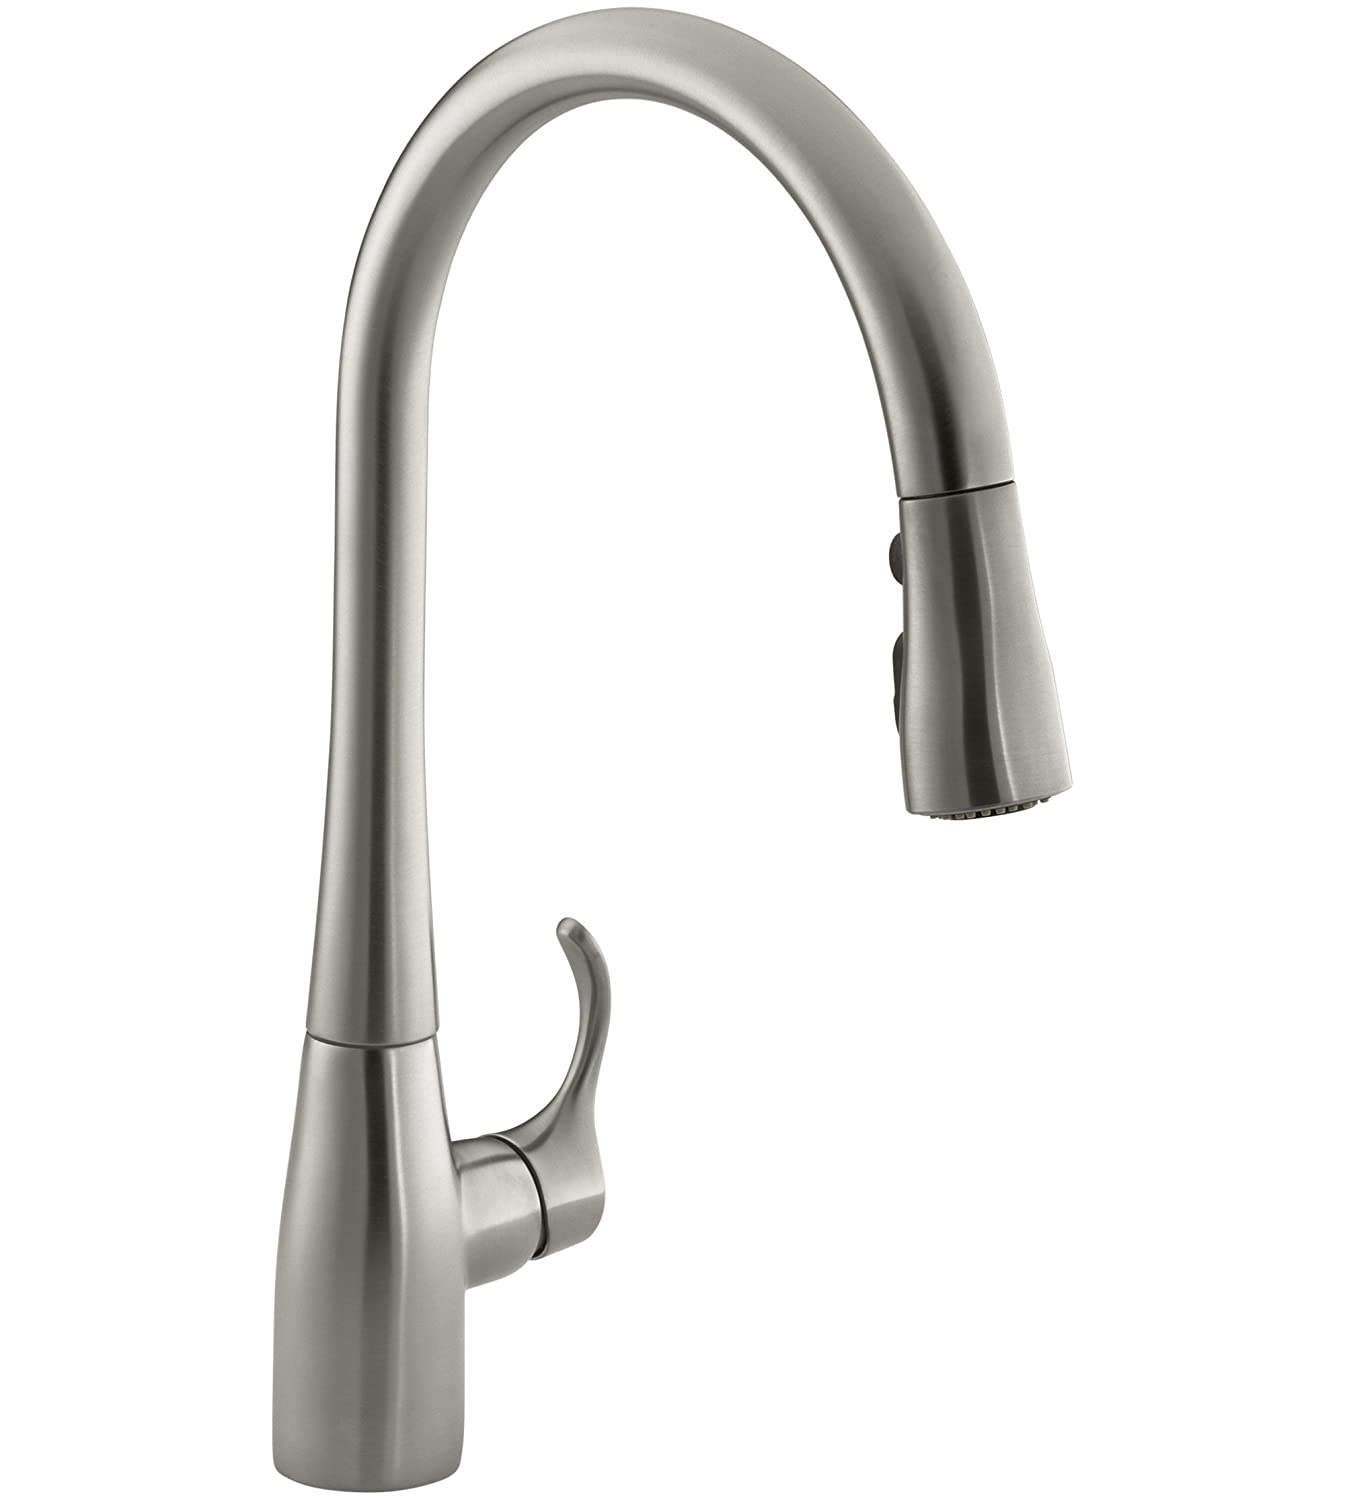 kitchen for black down chrome deals with here rados faucet steel stainless plumbing handle price the ever cheapest pull blanco single overstock shop gpm spray